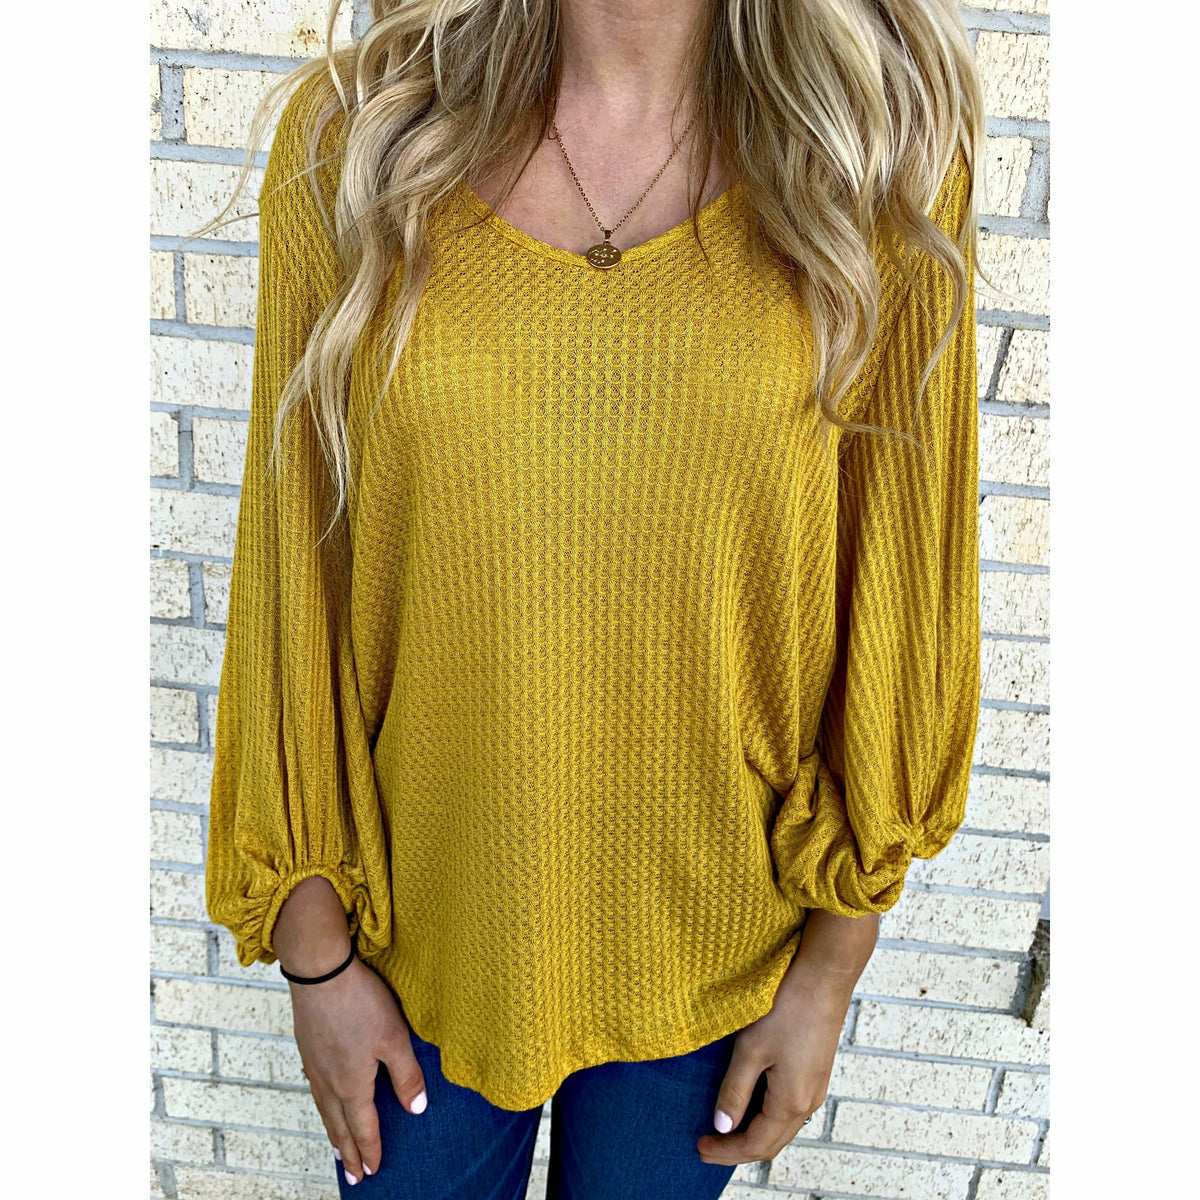 Basic Waffle Knit Light Top (4 colors)